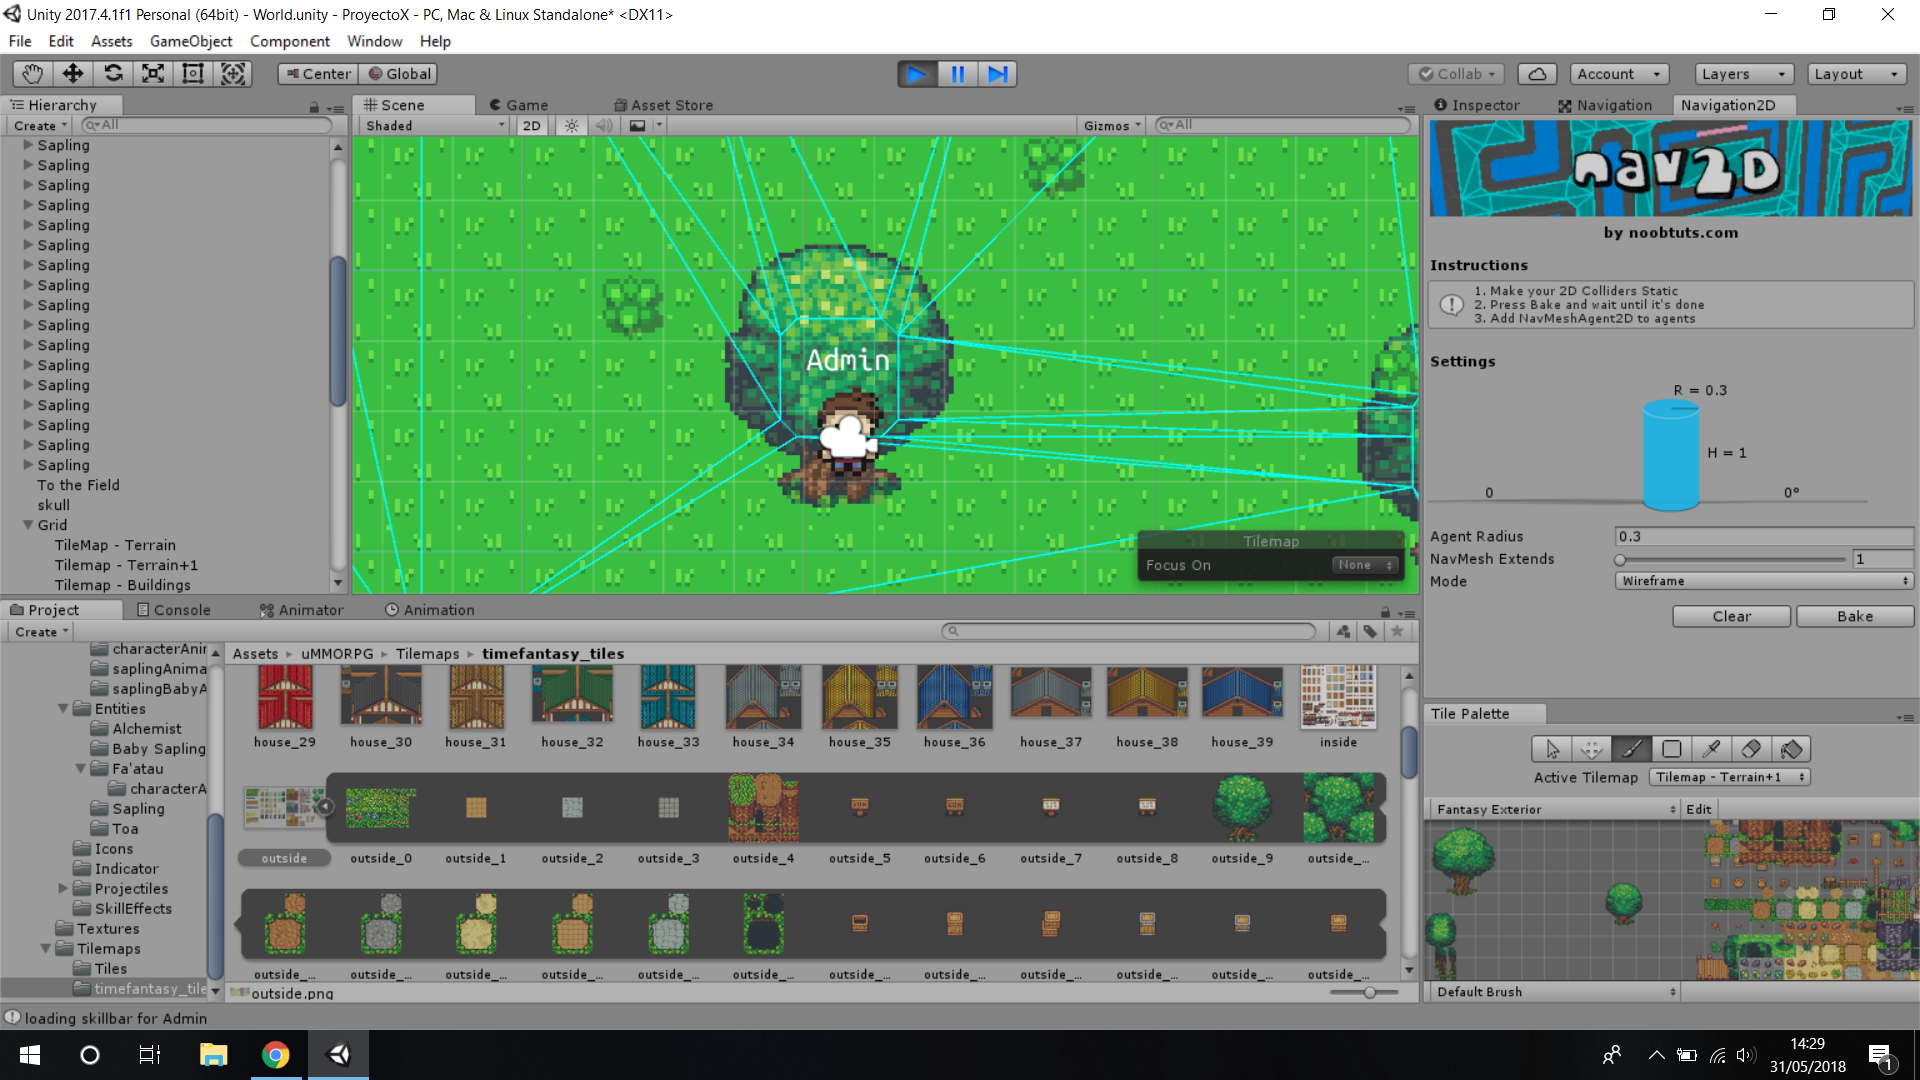 uMMORPG 2D Official Thread - The Unity 2D MMORPG Asset   Page 4